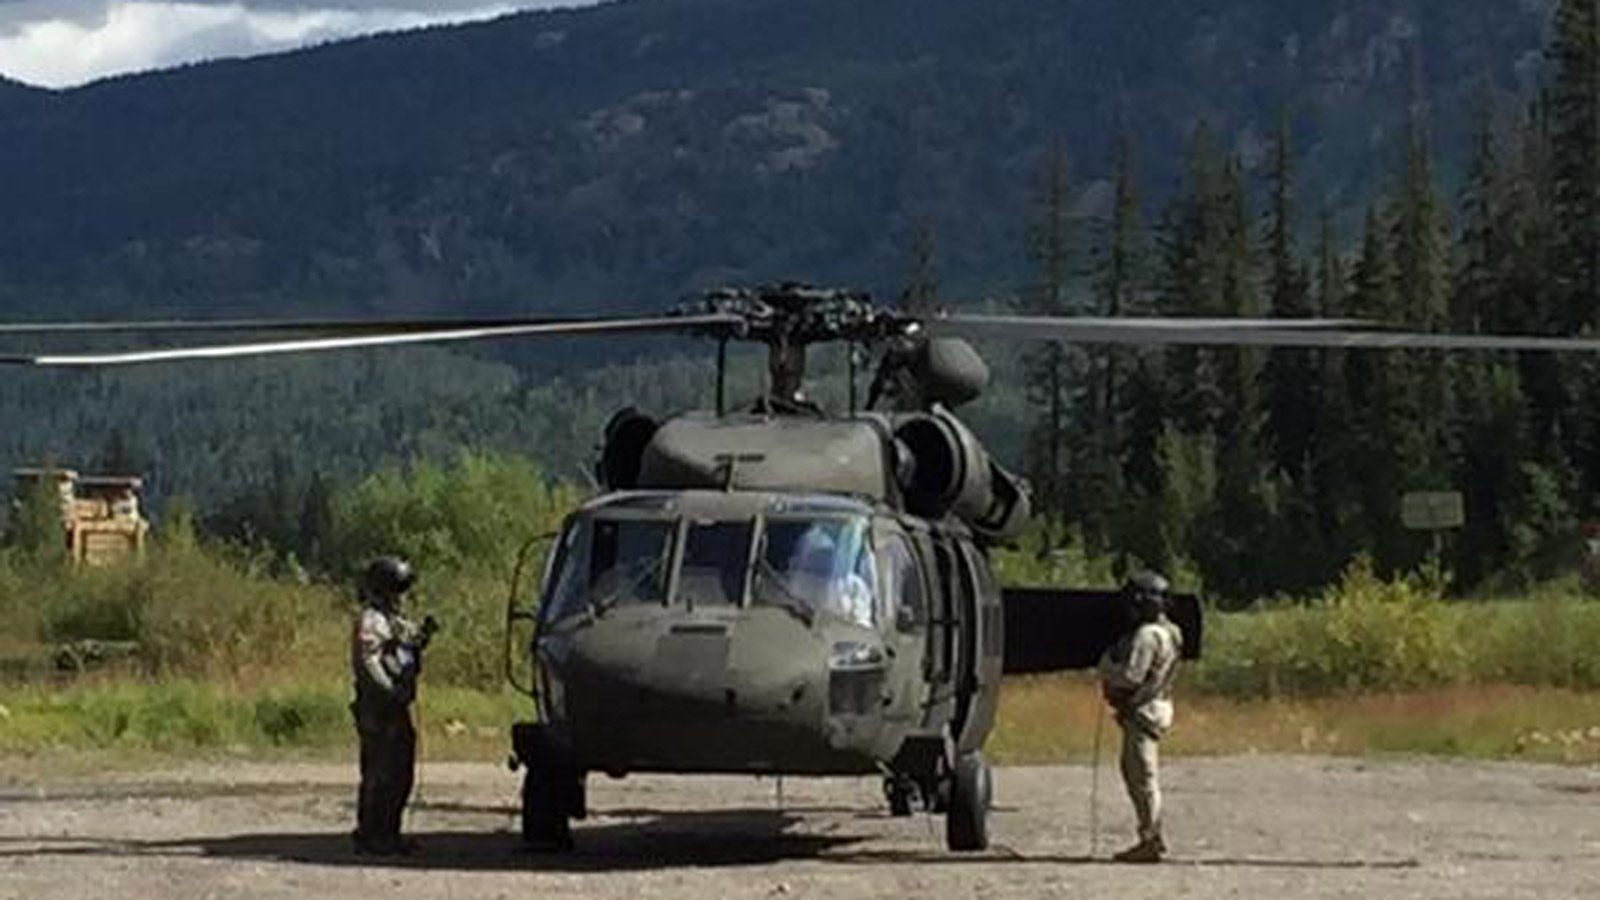 An image of the search and rescue operation (credit: Durango Herald)